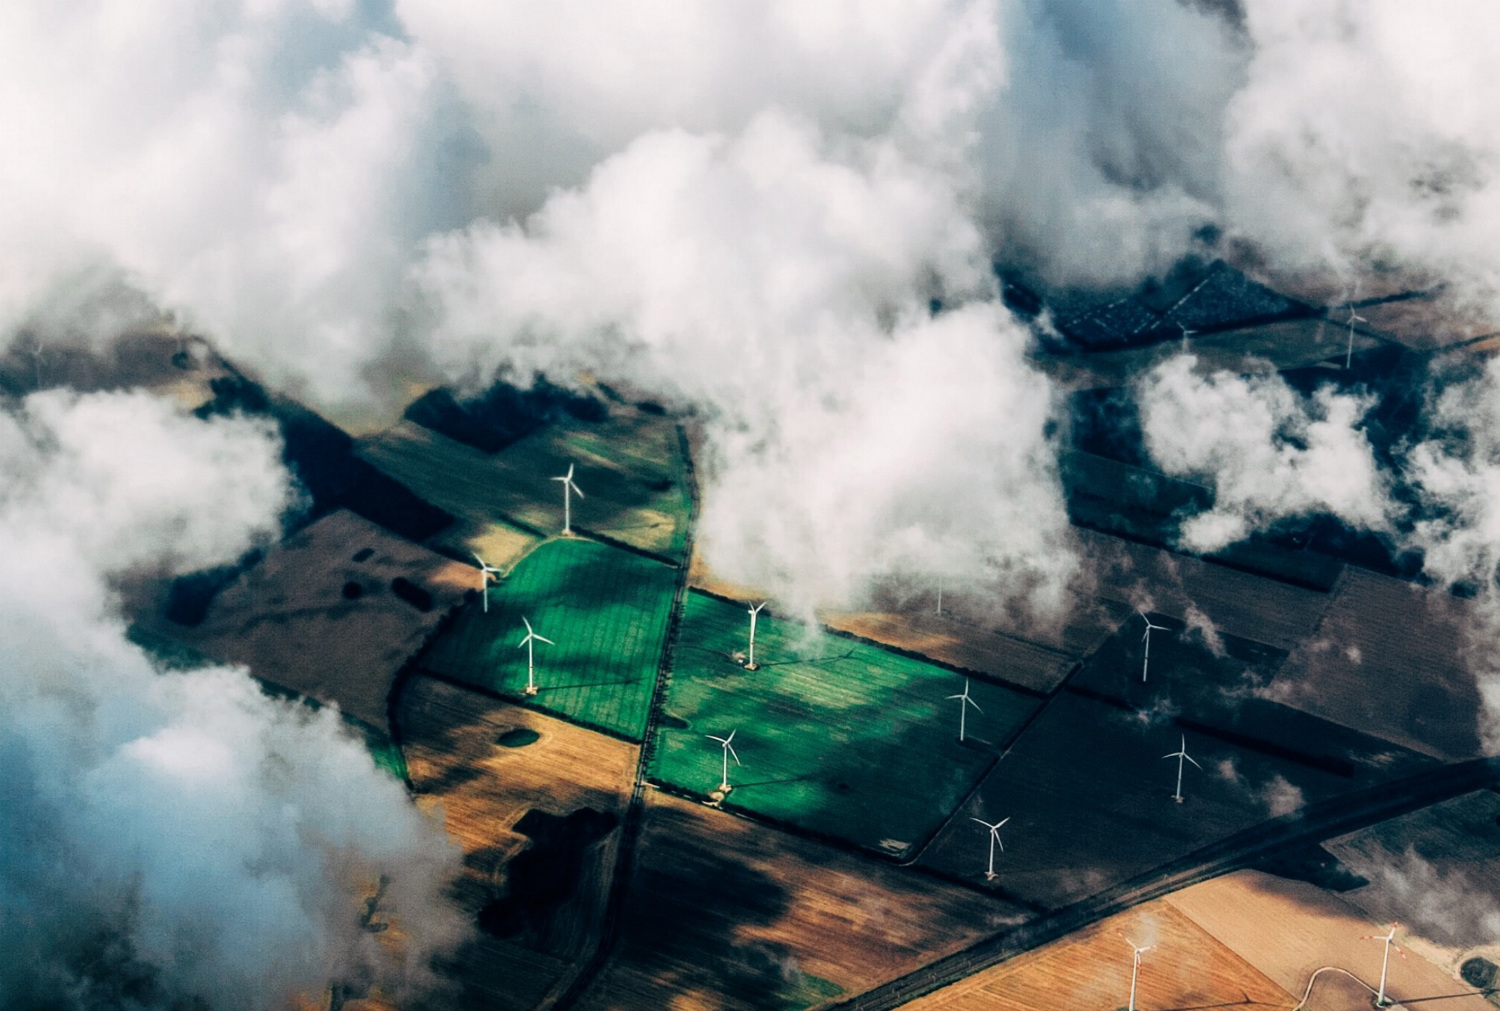 view of fields and wind turbines with some clouds covering the area